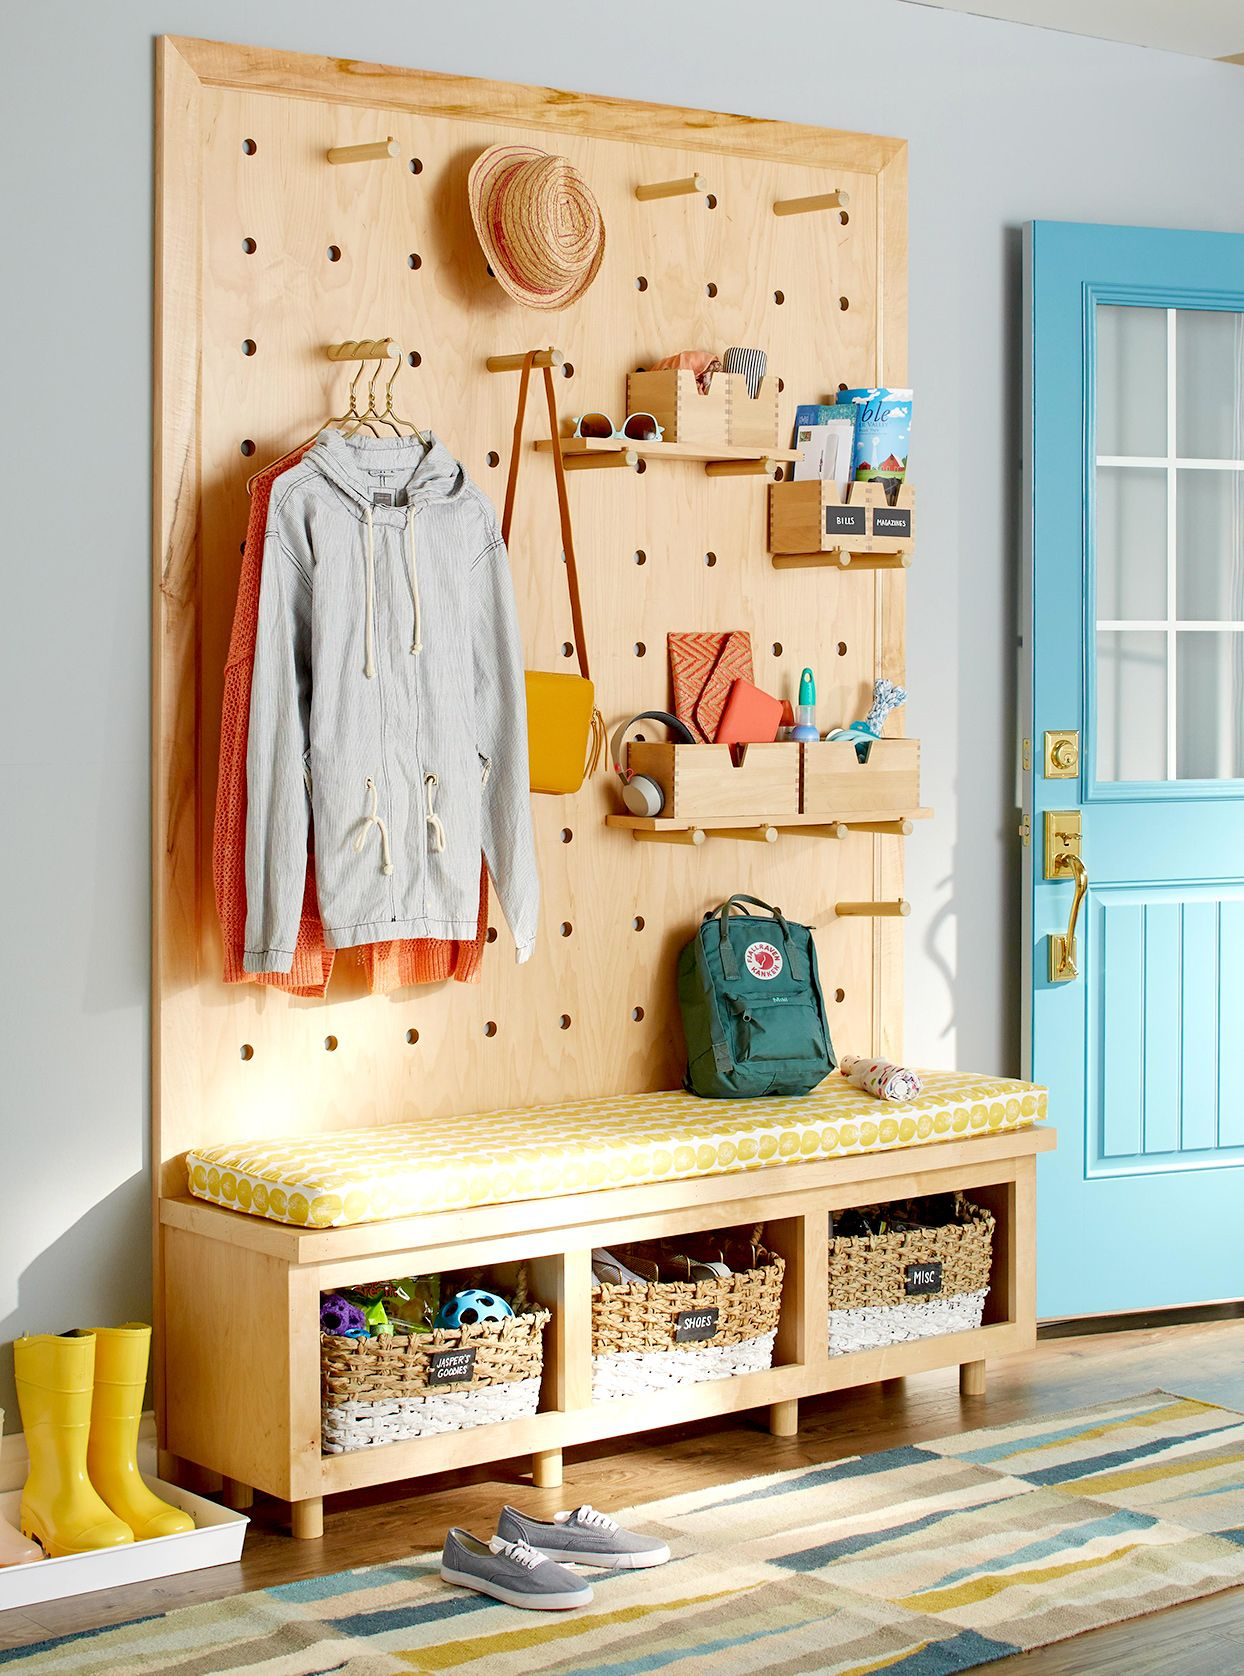 15 Brilliant Pegboard Ideas to Organize Your Life (Not Just Your Garage)